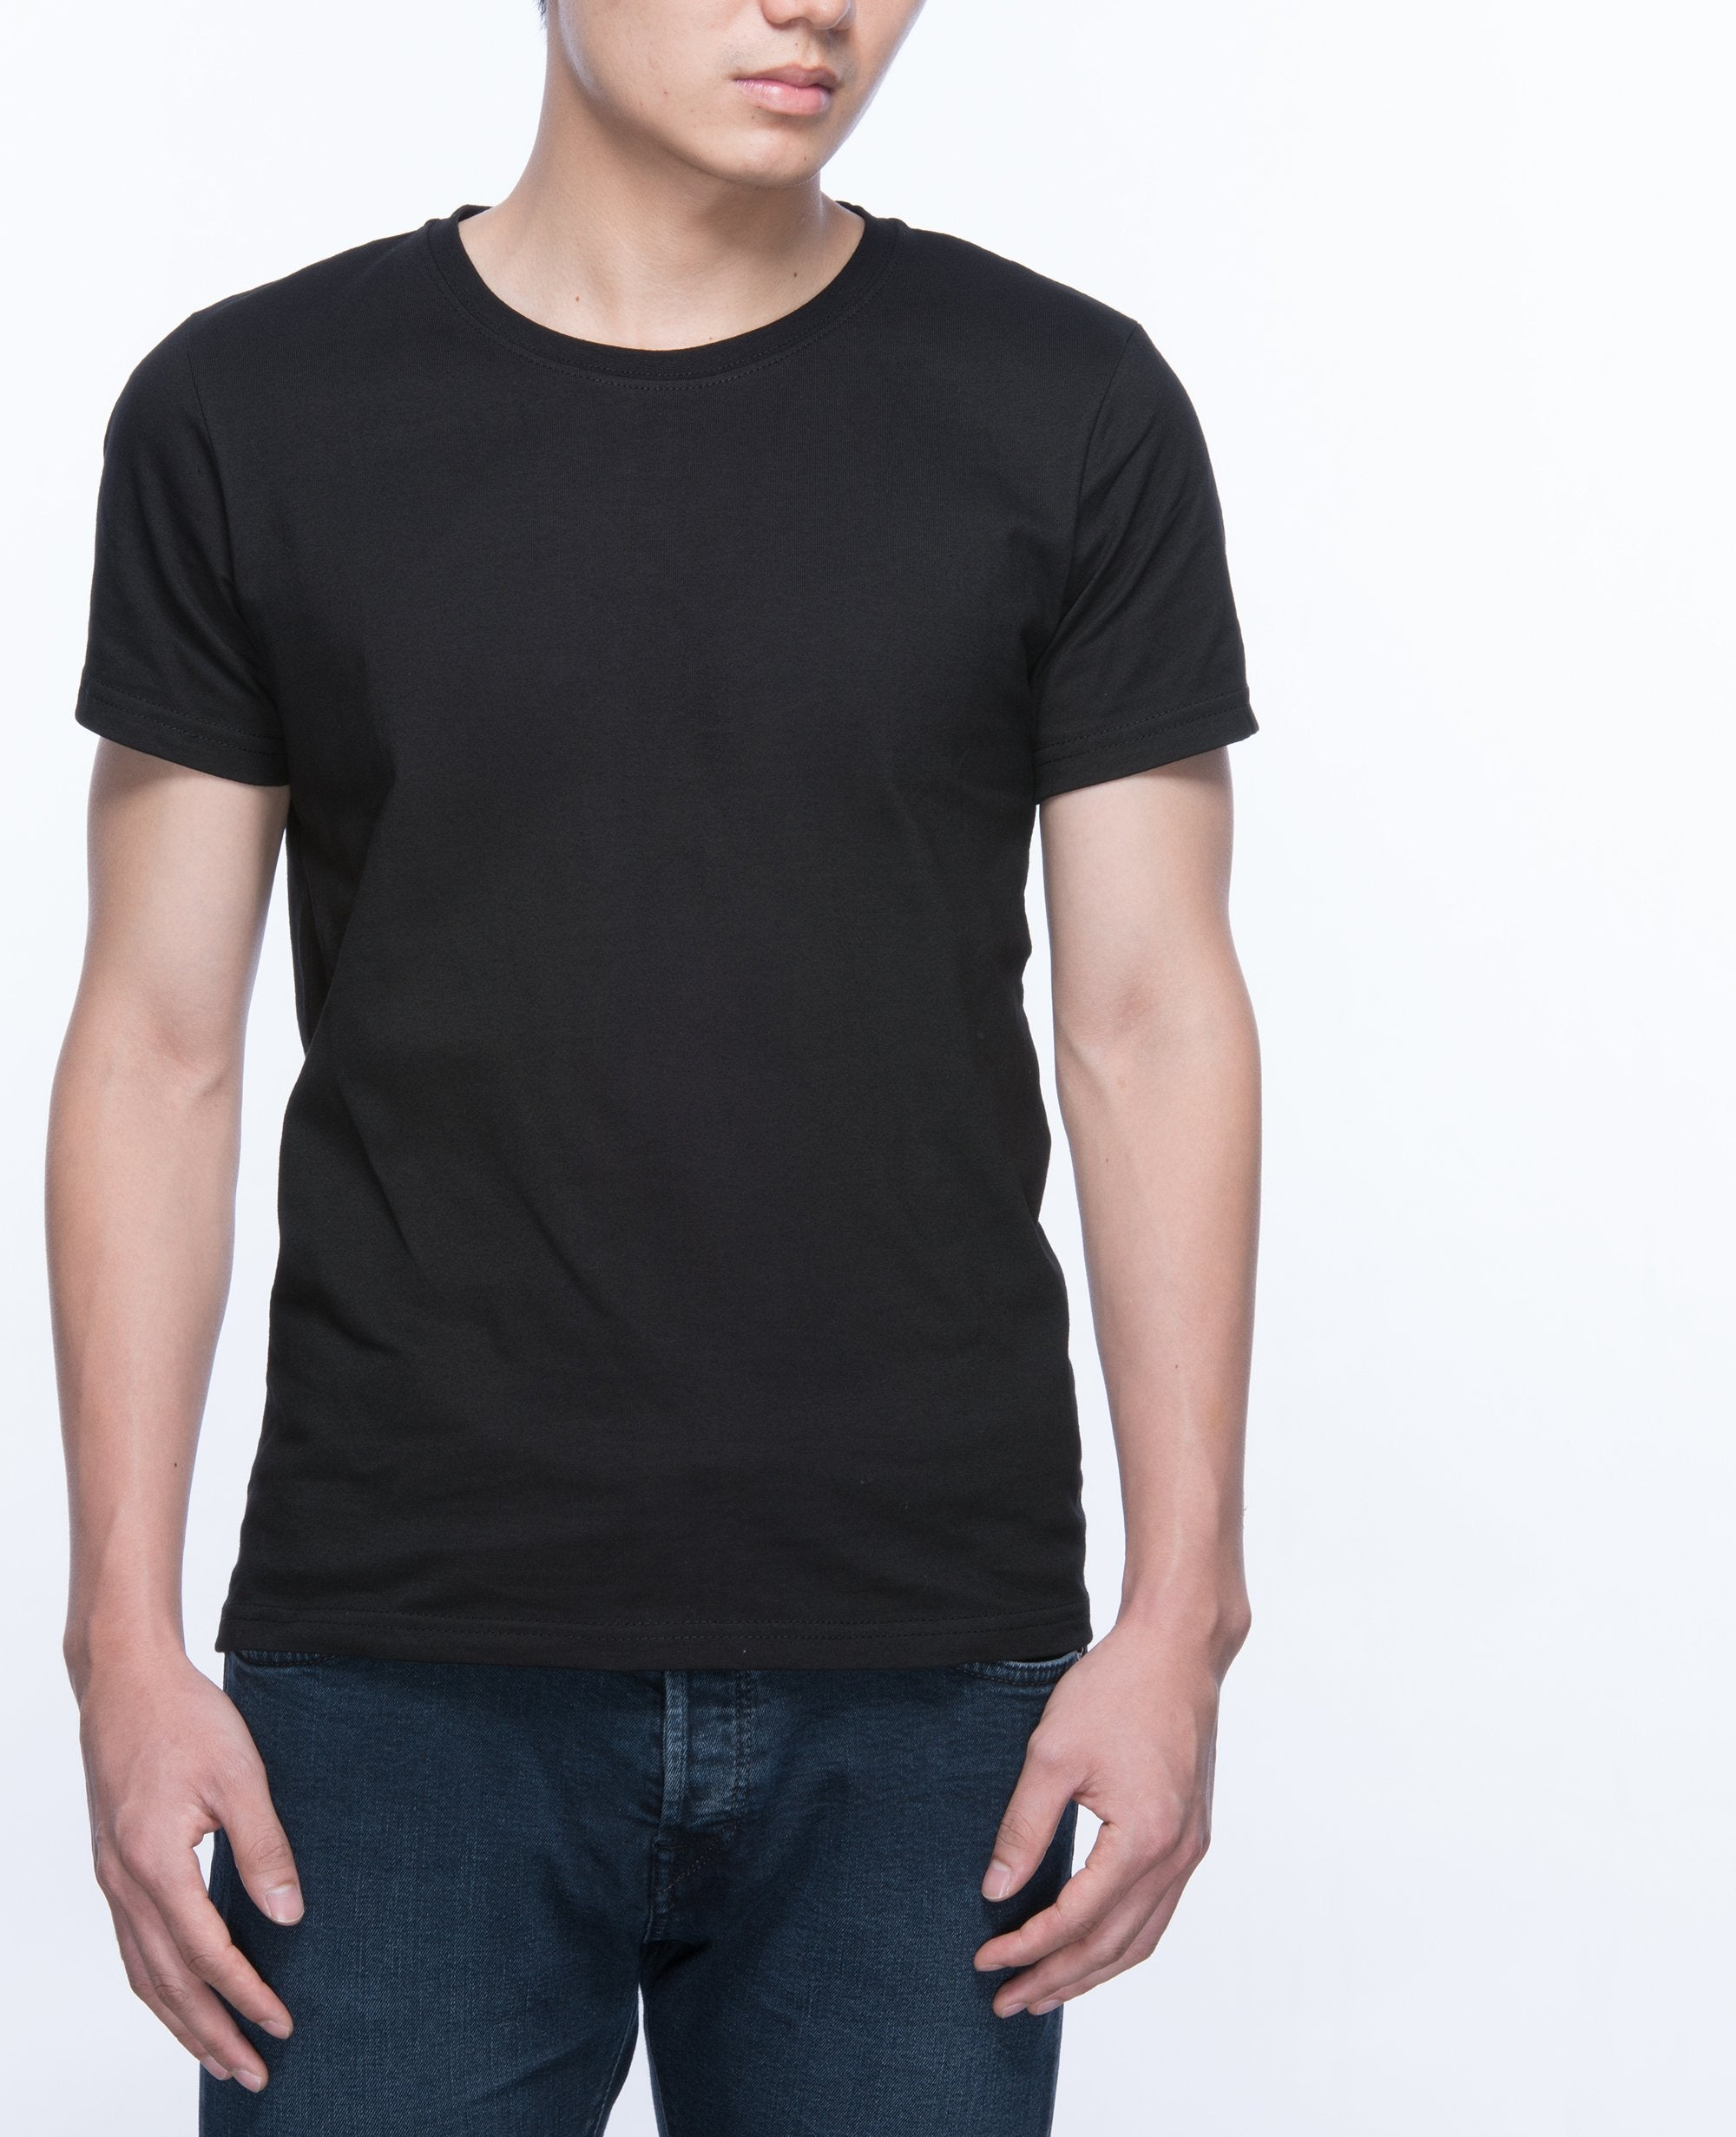 Basic T-shirt Men in Black - T-Shirts - BRANMA - BRANMA